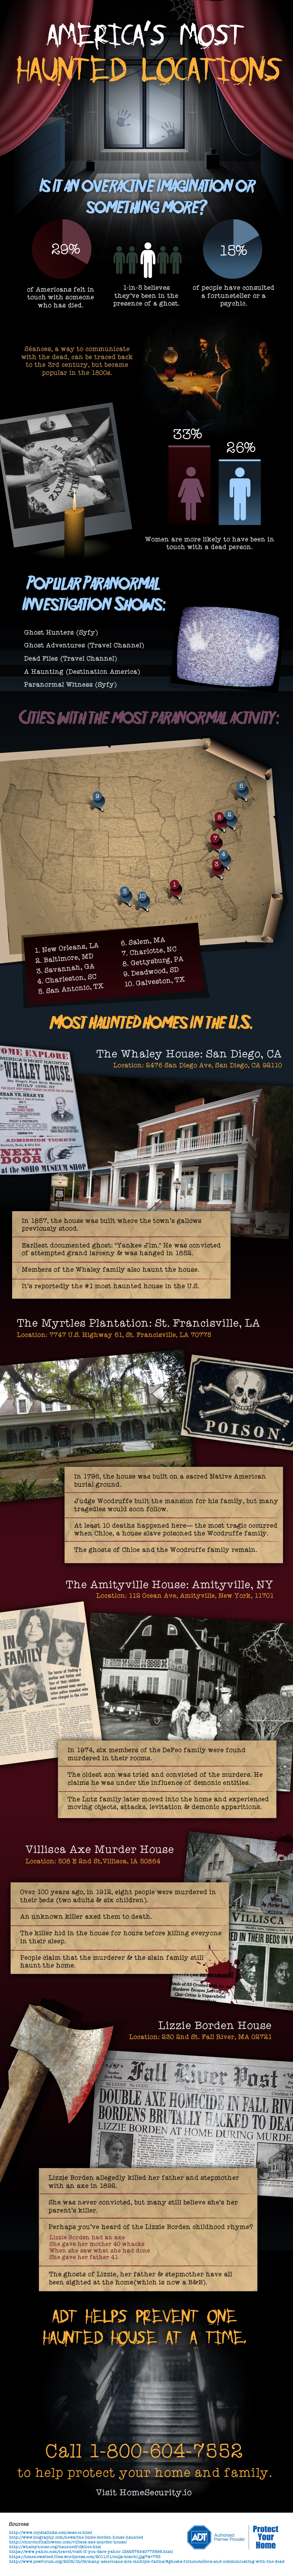 America's Most Haunted Locations by HomeSecurity.io